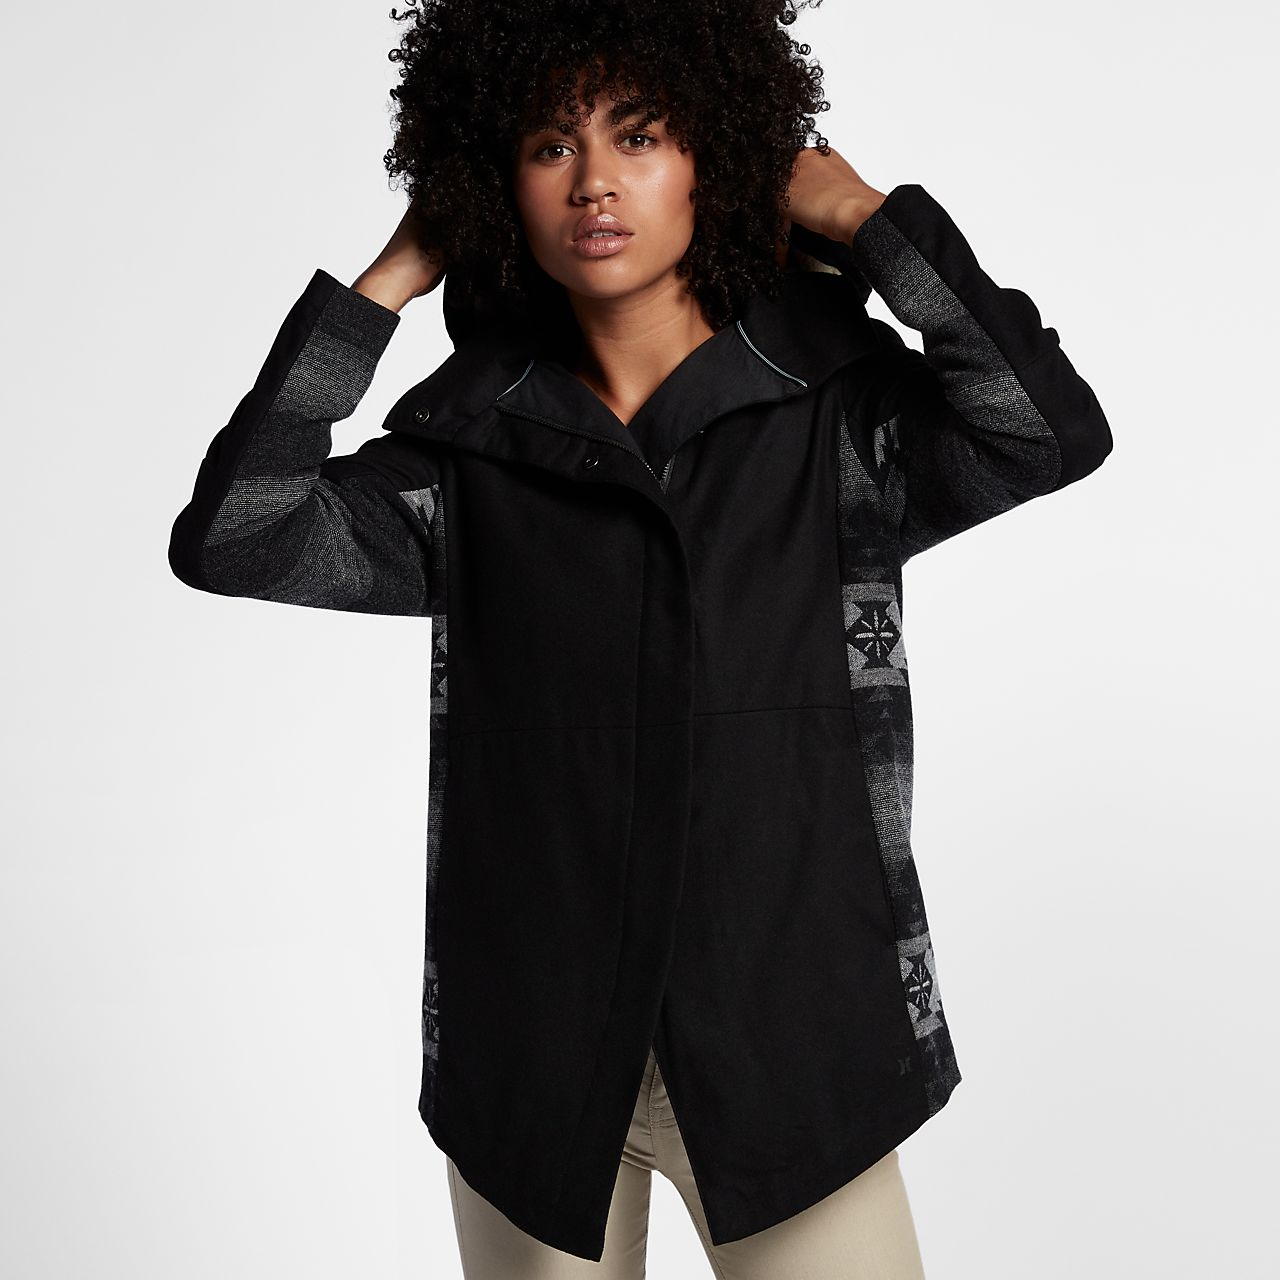 Low Resolution Hurley Winchester Pendleton Women's Jacket Hurley Winchester  Pendleton Women's Jacket